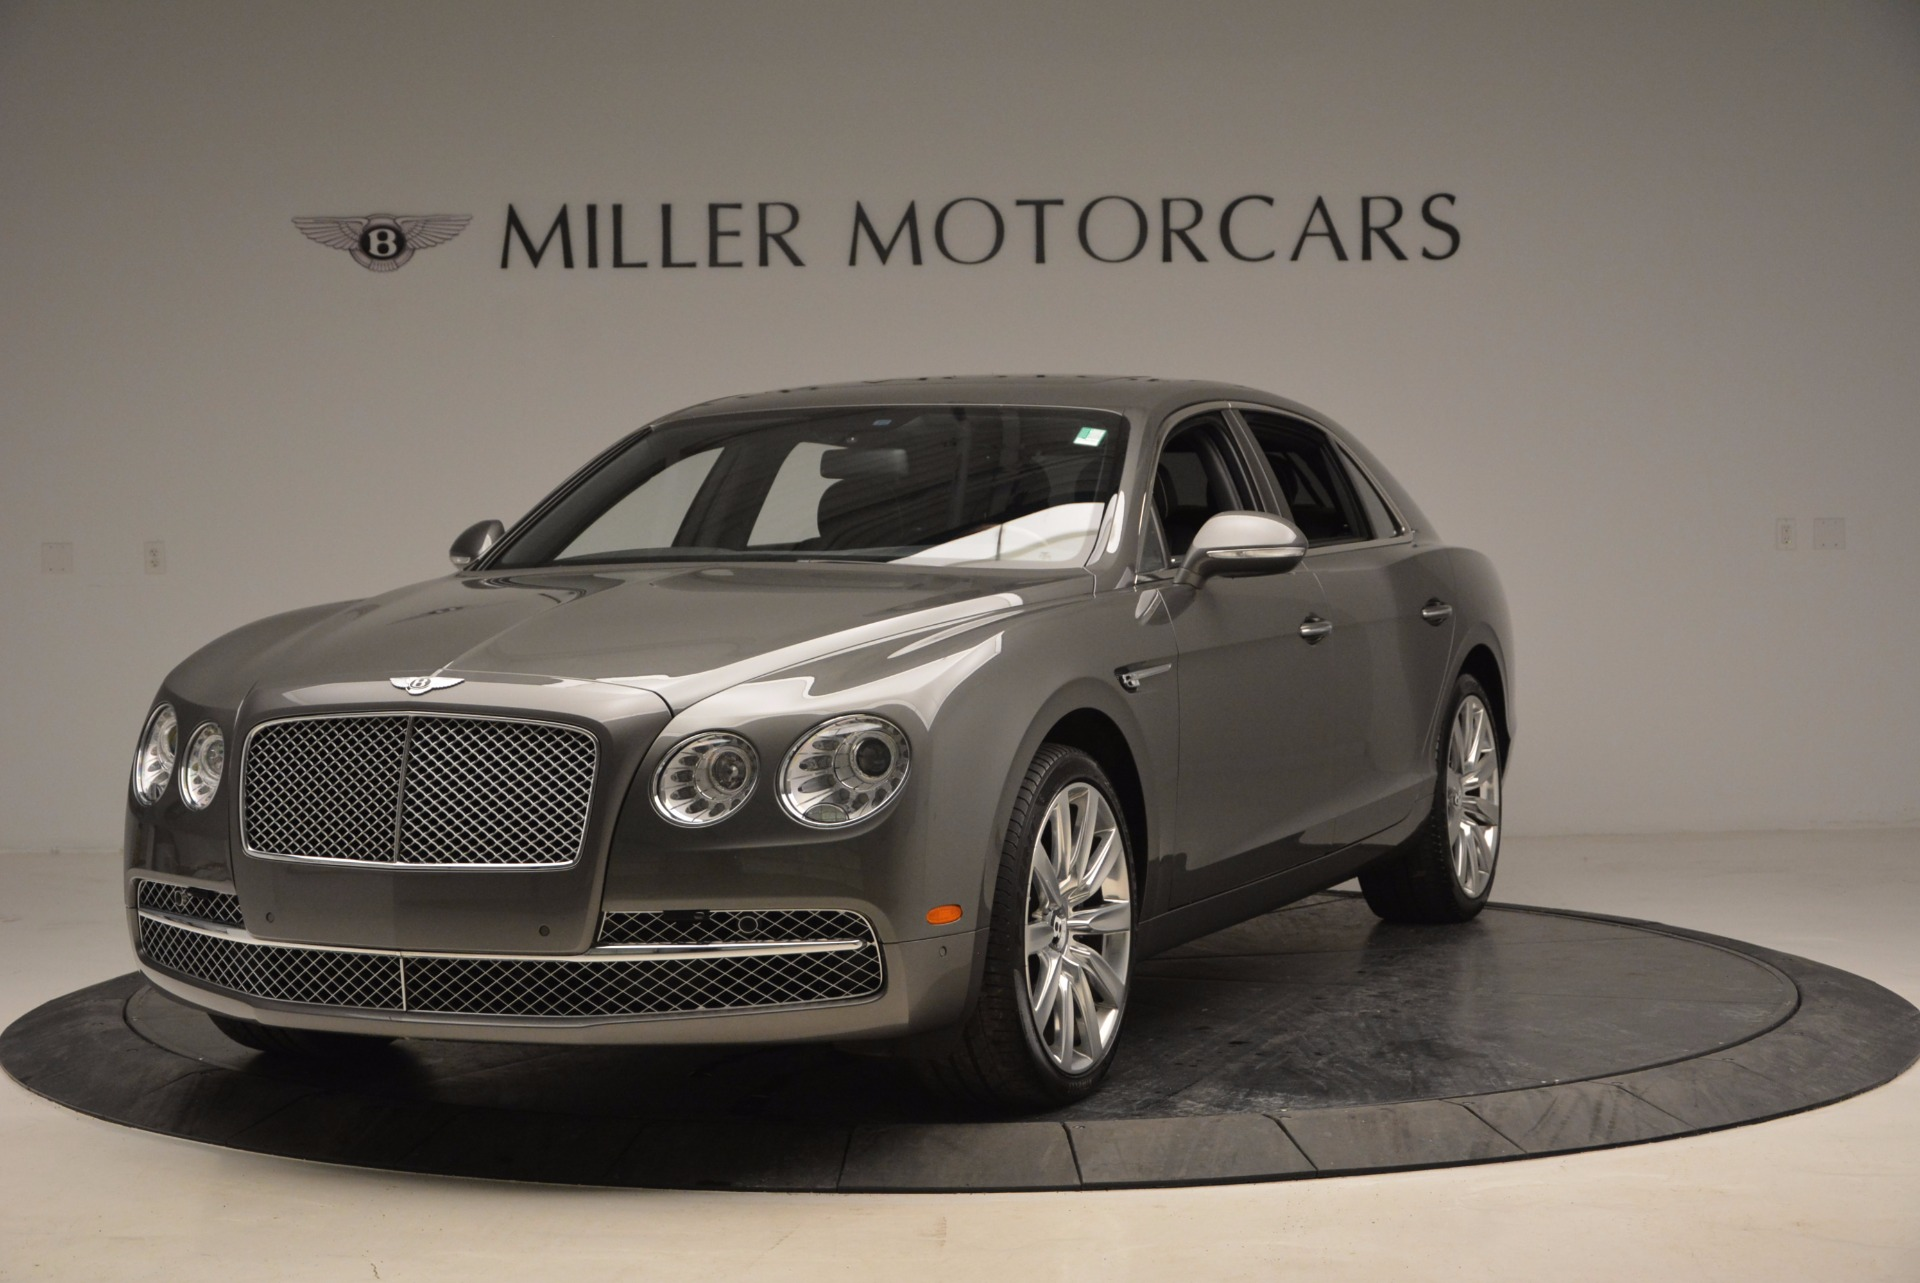 Used 2014 Bentley Flying Spur for sale Sold at Bentley Greenwich in Greenwich CT 06830 1